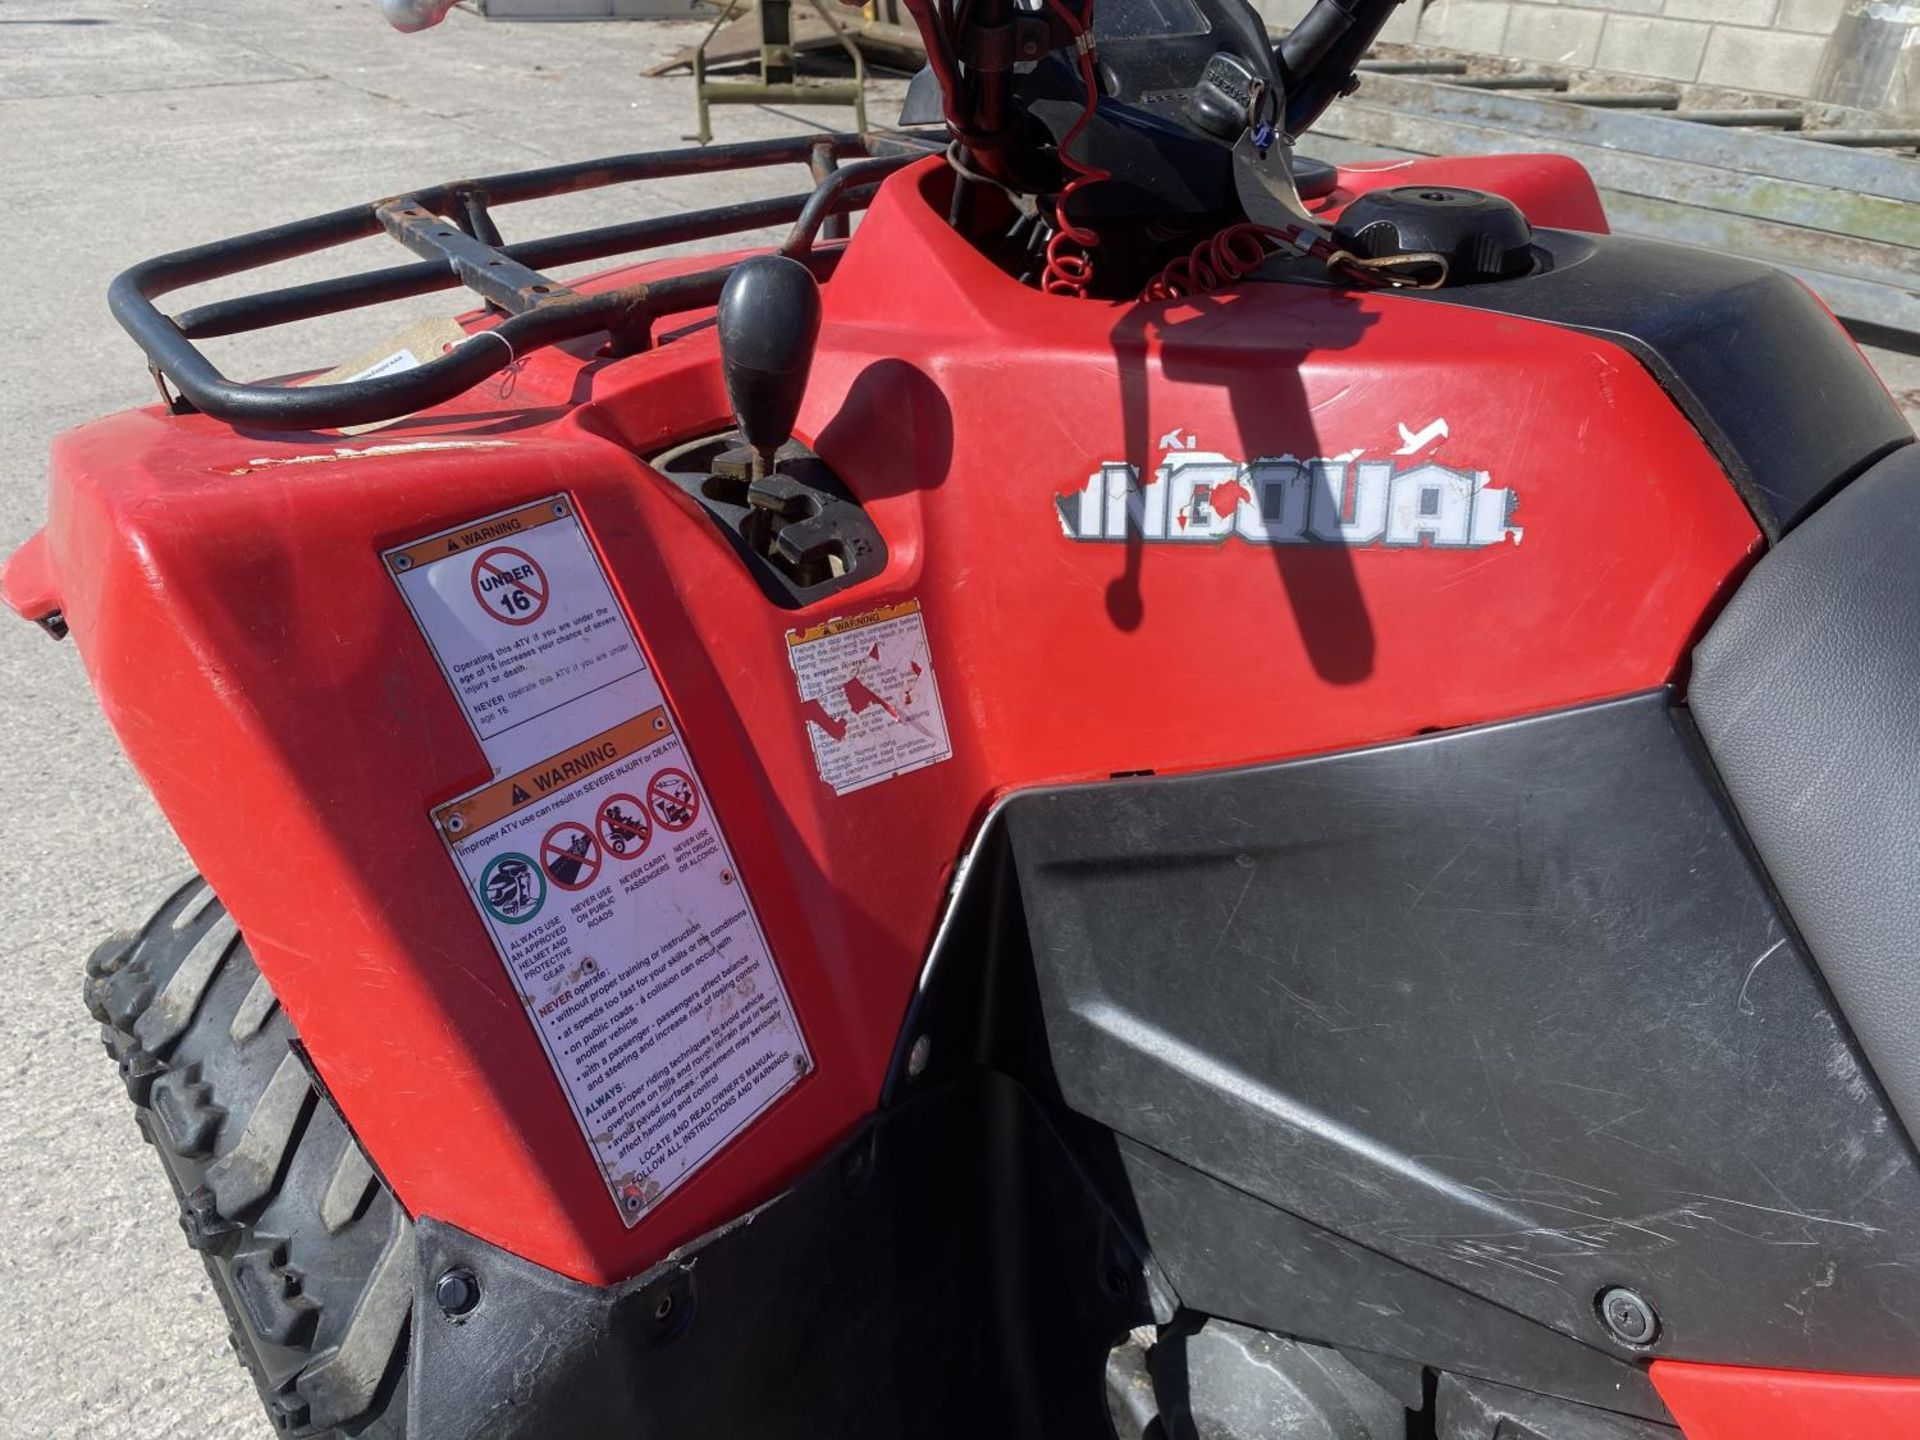 A 2013 SUZUKI KING QUAD, 400 CC AUTOMATIC - SEE VIDEO OF VEHICLE STARTING AND RUNNING - NO VAT - Image 2 of 12